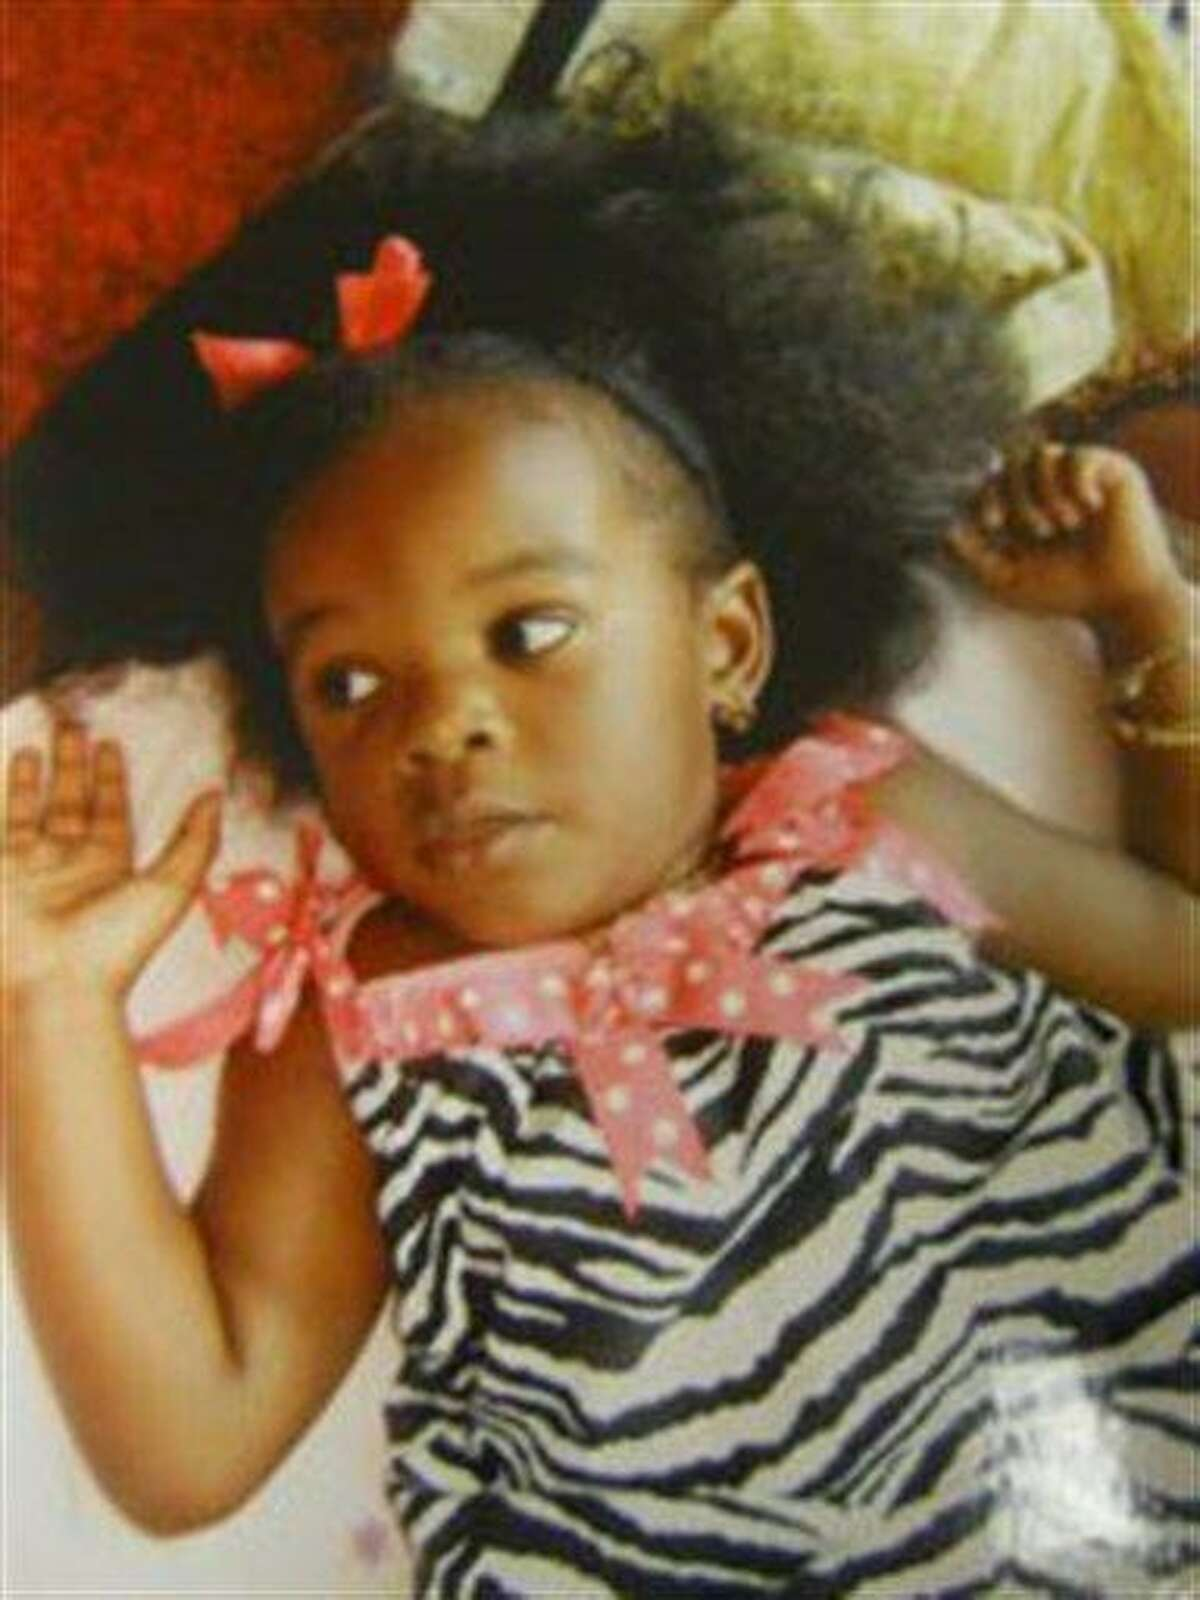 FILE - This file photo provided by the Ocean County Prosecutor's Office shows Tierra Morgan-Glover of Lakehurst, N.J., who was found dead in her car seat, partially submerged in a stream in Monmouth County's Shark River Park. The girl's father, 27-year-old Arthur Morgan III, suspected of killing the girl, was arrested in San Diego on Tuesday, Nov. 29, 2011. (AP Photo/Ocean County Prosecutor's Office, File)